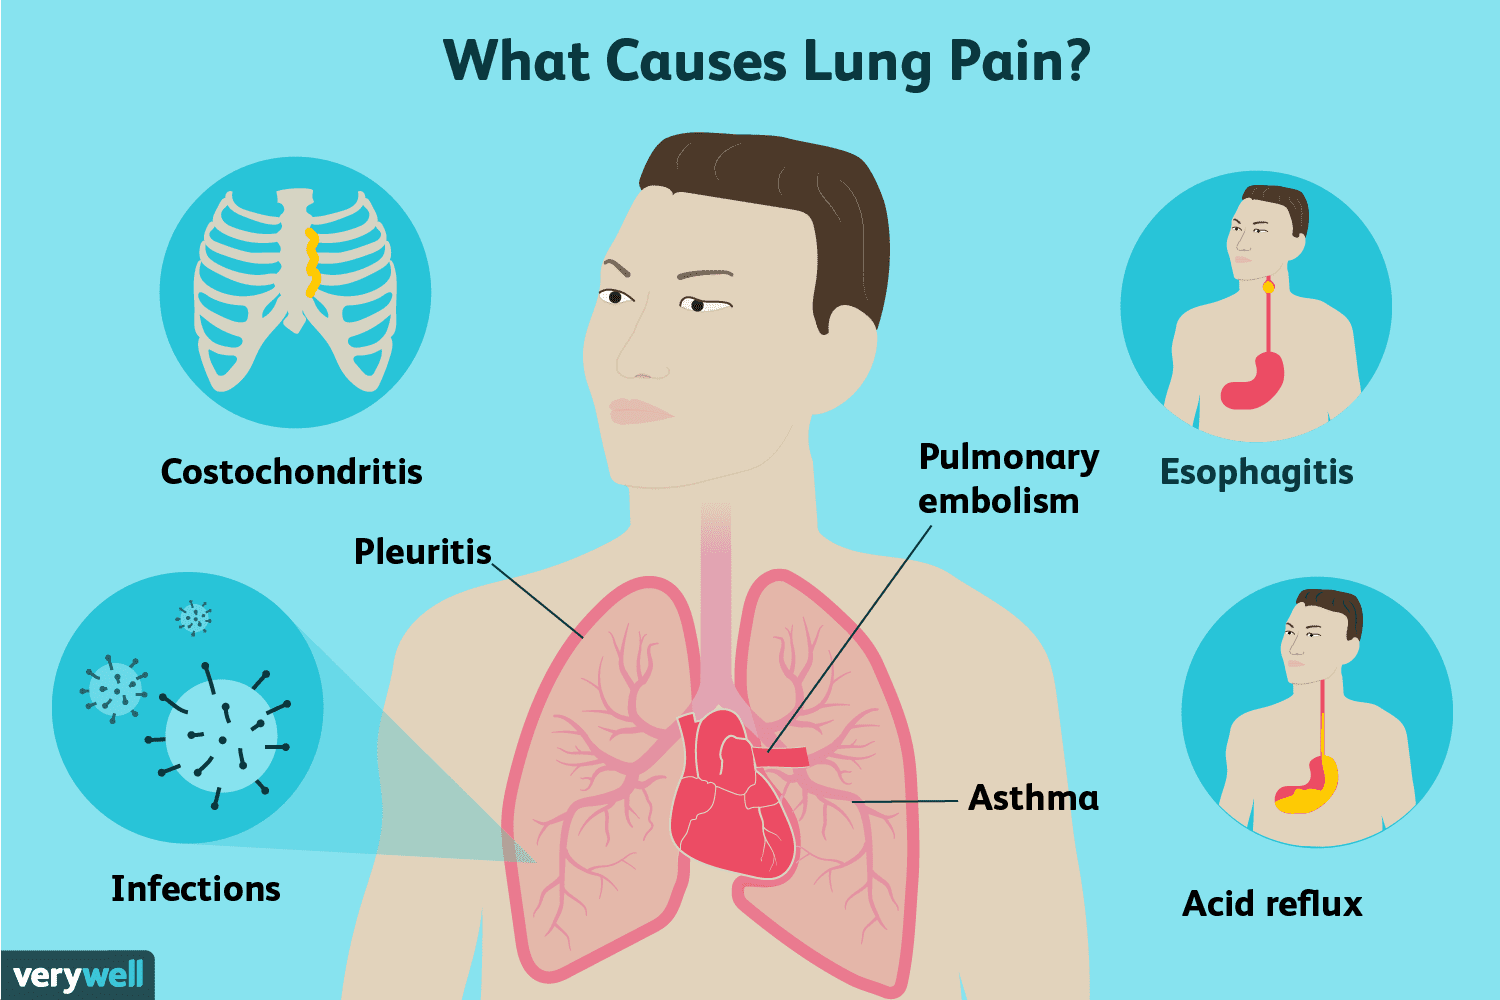 Lung Pain: Causes, Treatment, and When to See a Doctor